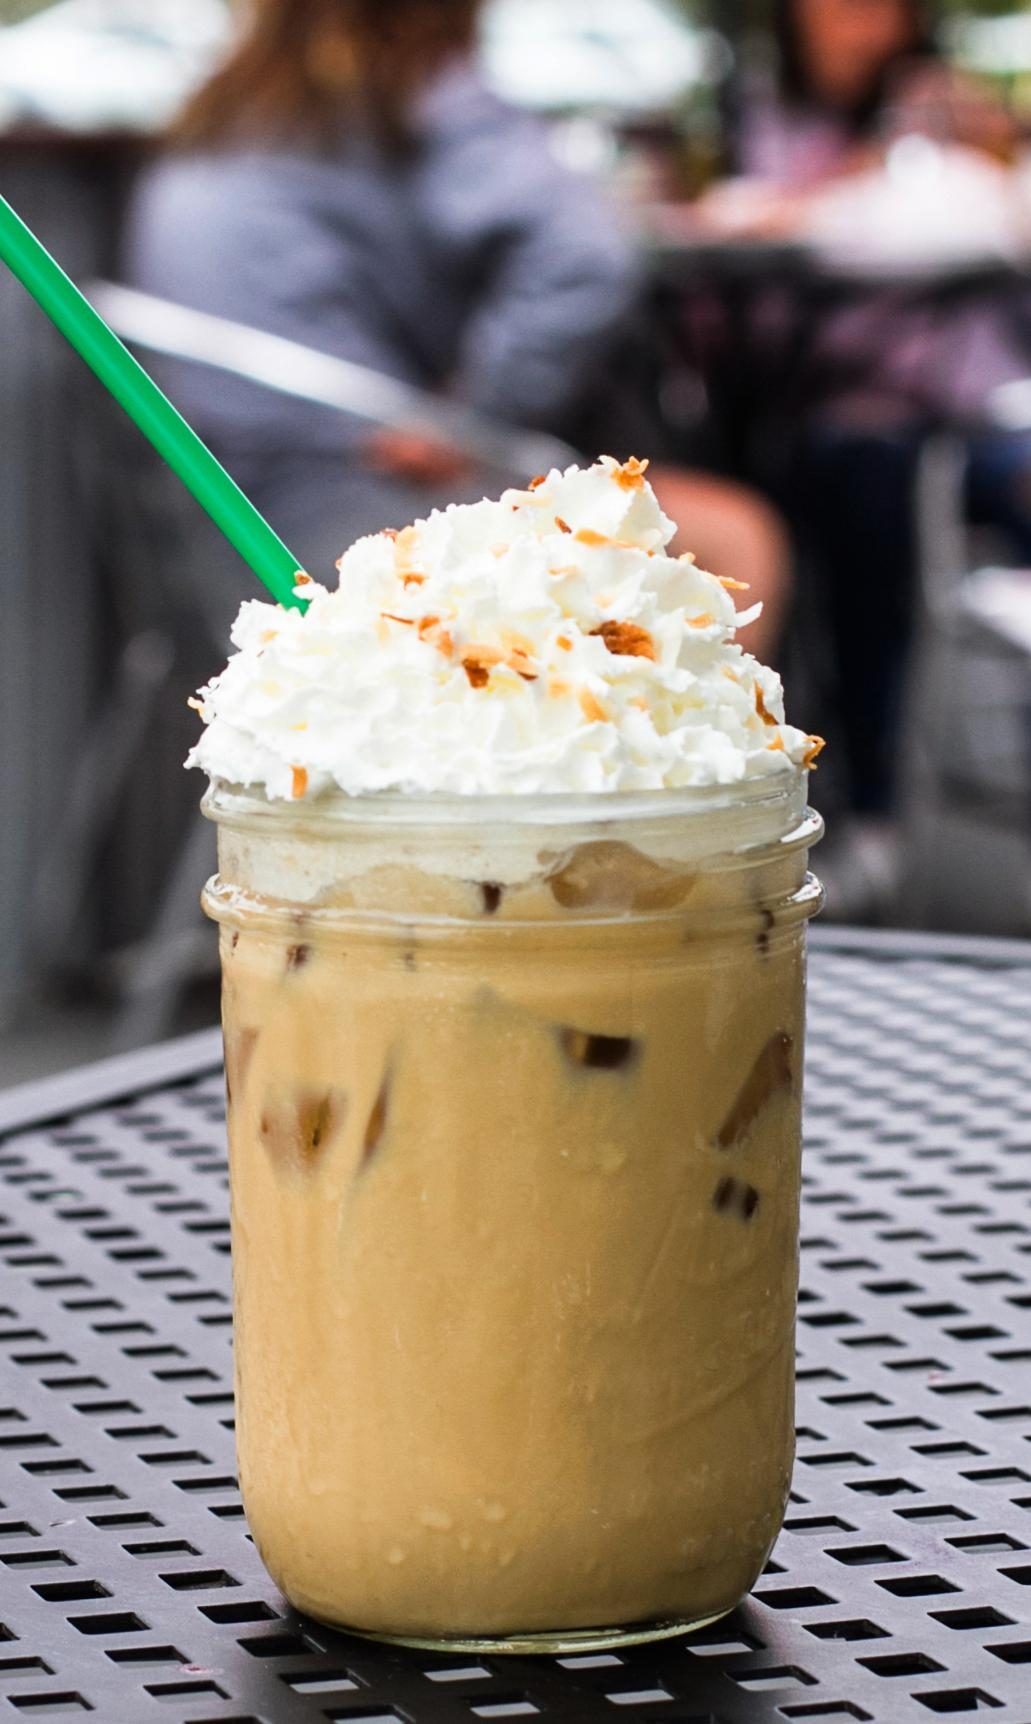 Coconut Iced Latte - $4.50 - Iced latte with our house made coconut flavored syrup topped with whipped cream and toasted coconut flakes. Served on a mason jar.- Coconut syrup- Double shot of espresso- Choice of milk- Whipped Cream- Toasted coconut flakes(DLV and Calle Real locations only)